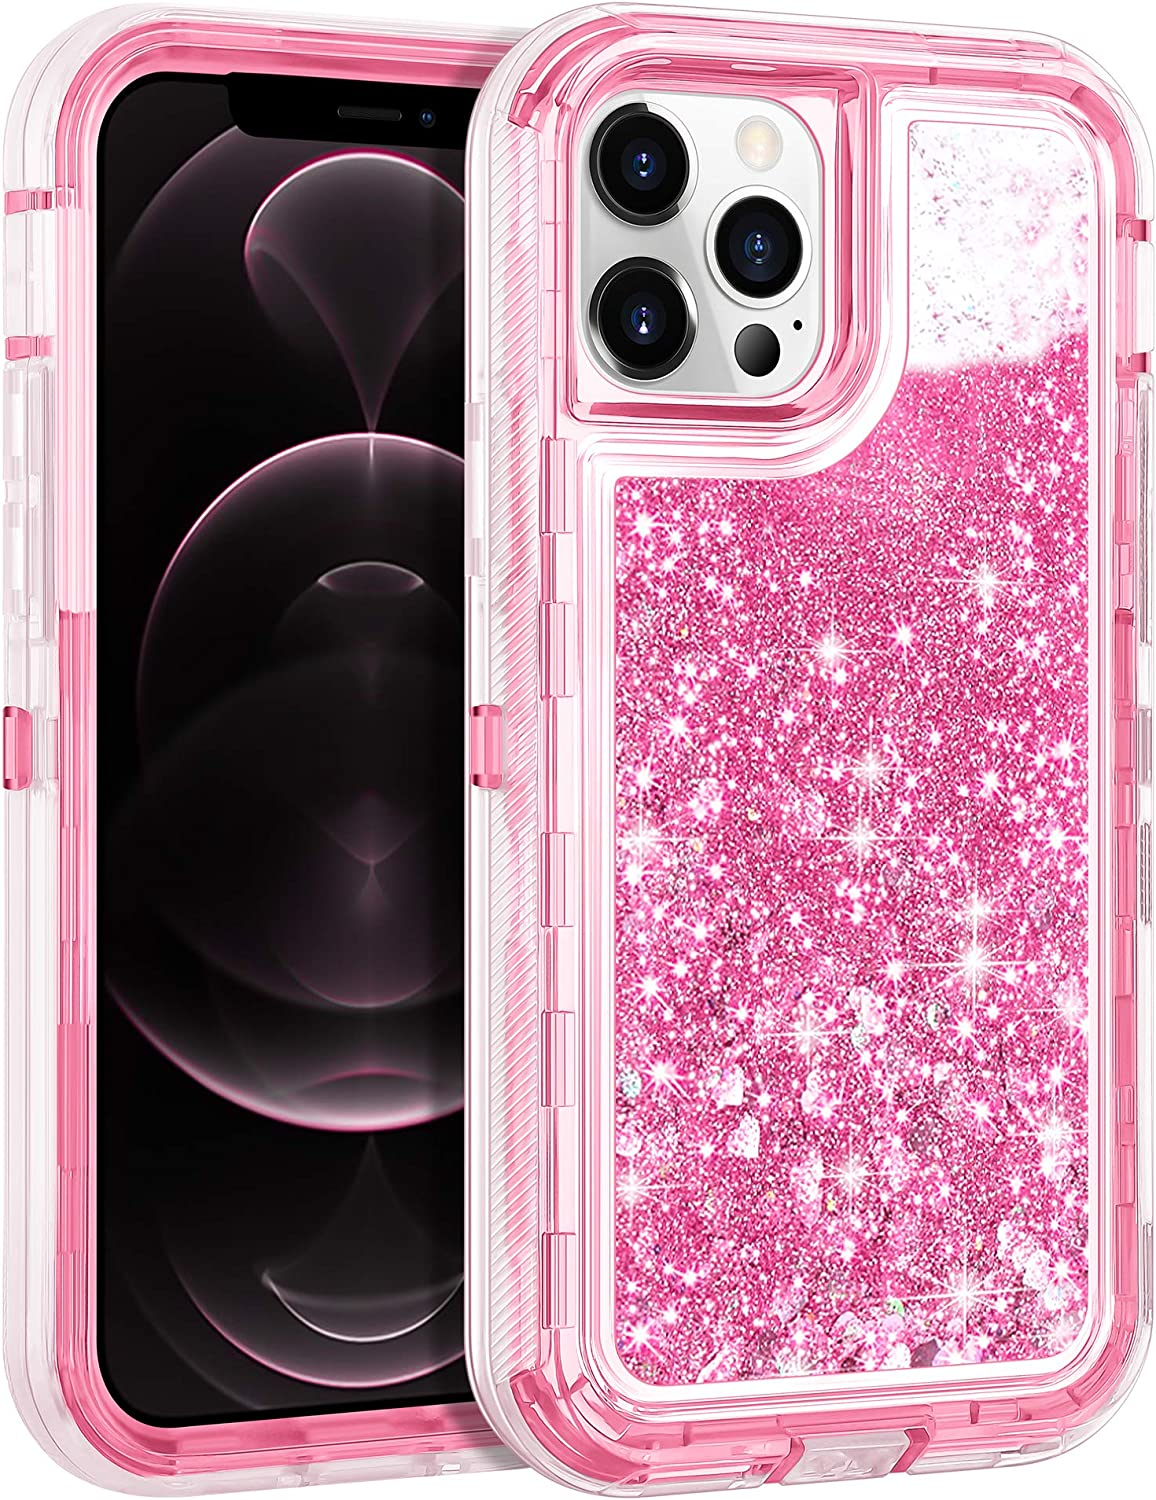 Wollony Case Compatible with iPhone 12, Compatible with iPhone 12 Pro(6.1 inch) Glitter Liquid Bling Quicksand Full Protection Shockproof Hard Bumper Soft Clear Rubber Protective Cover 5G Pink